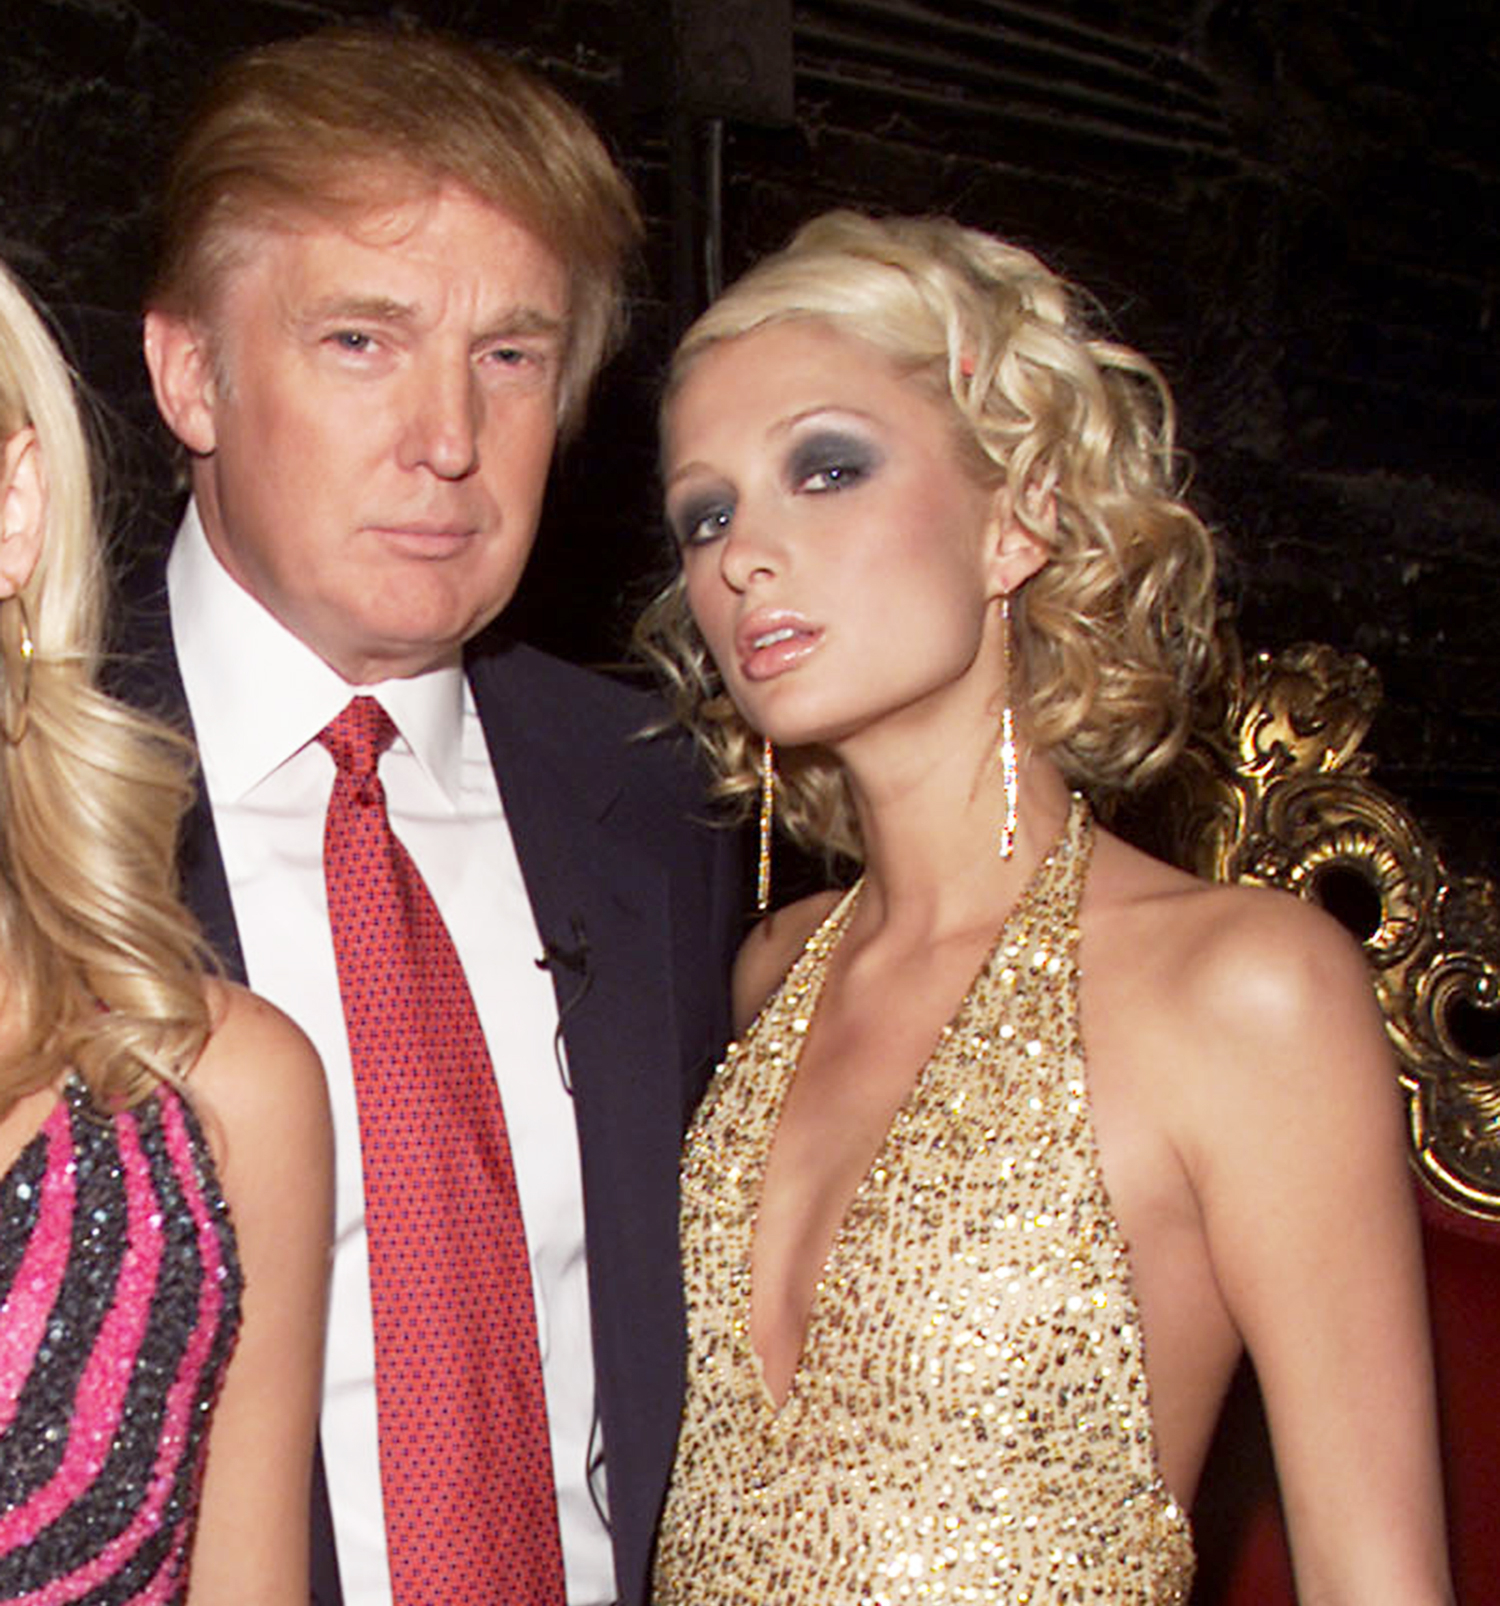 Donald Trump and Paris Hilton in New York City, on October 18, 2001